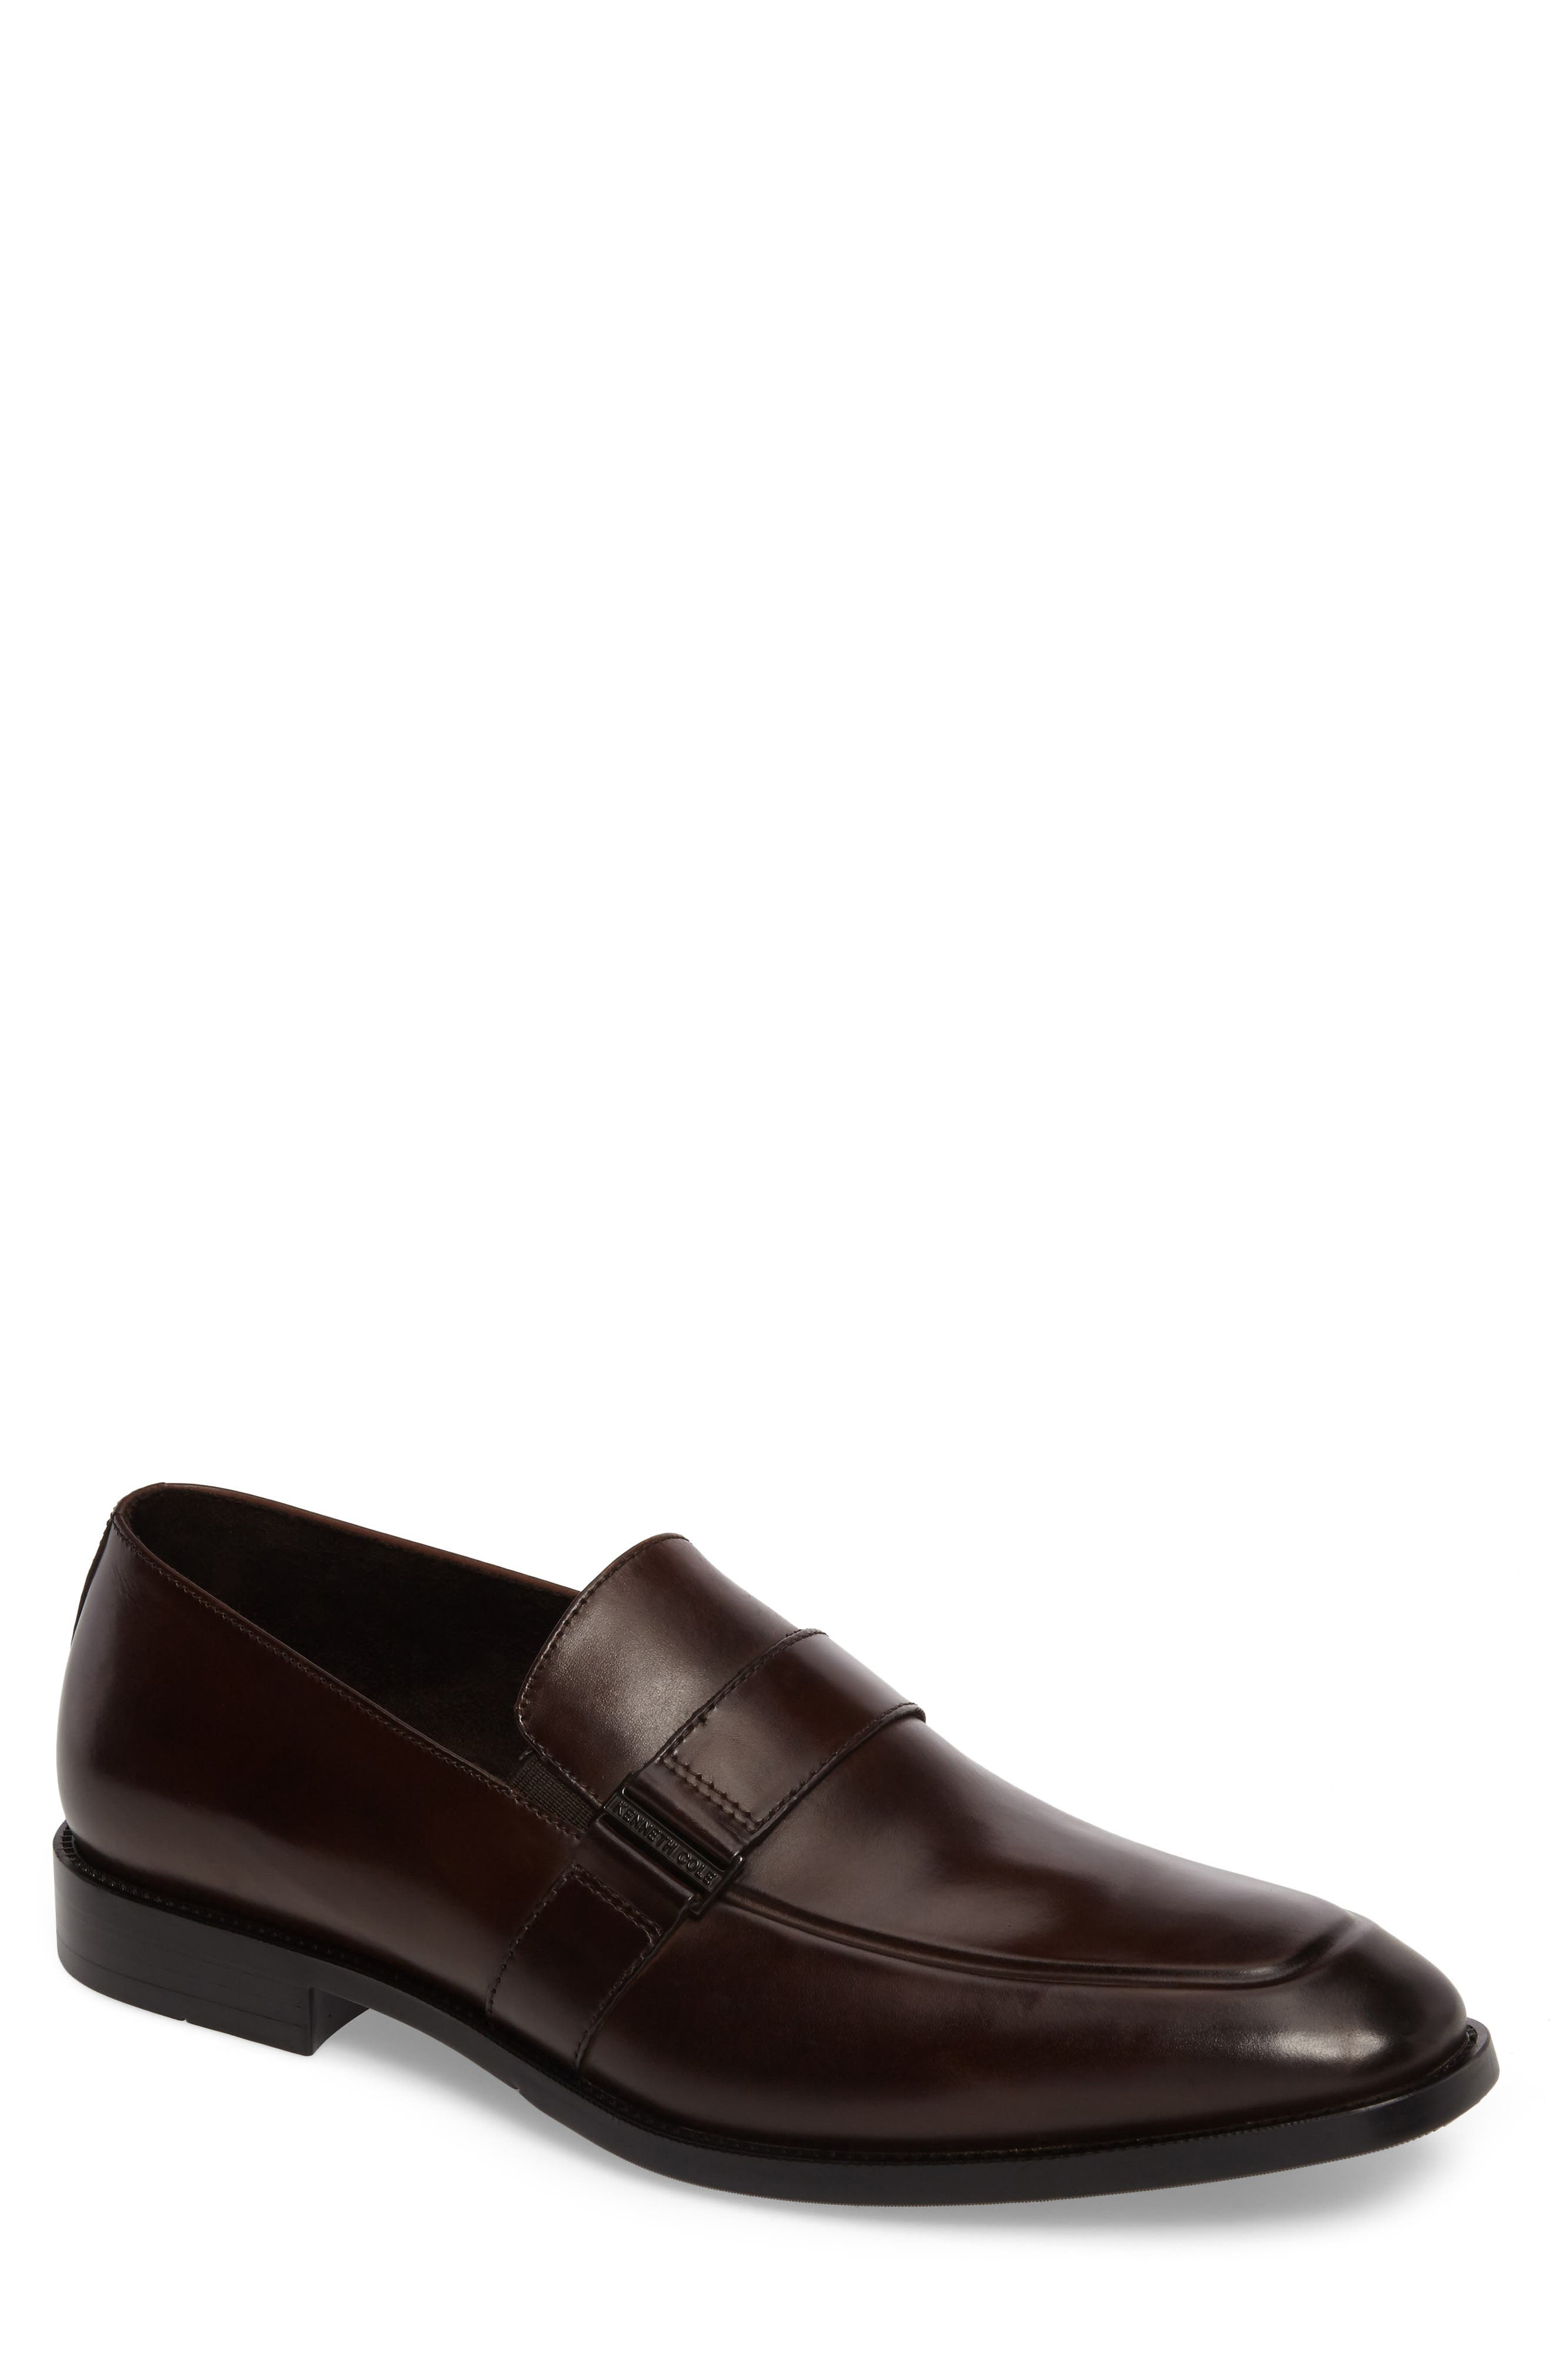 Apron Toe Loafer,                             Main thumbnail 1, color,                             Brown Leather